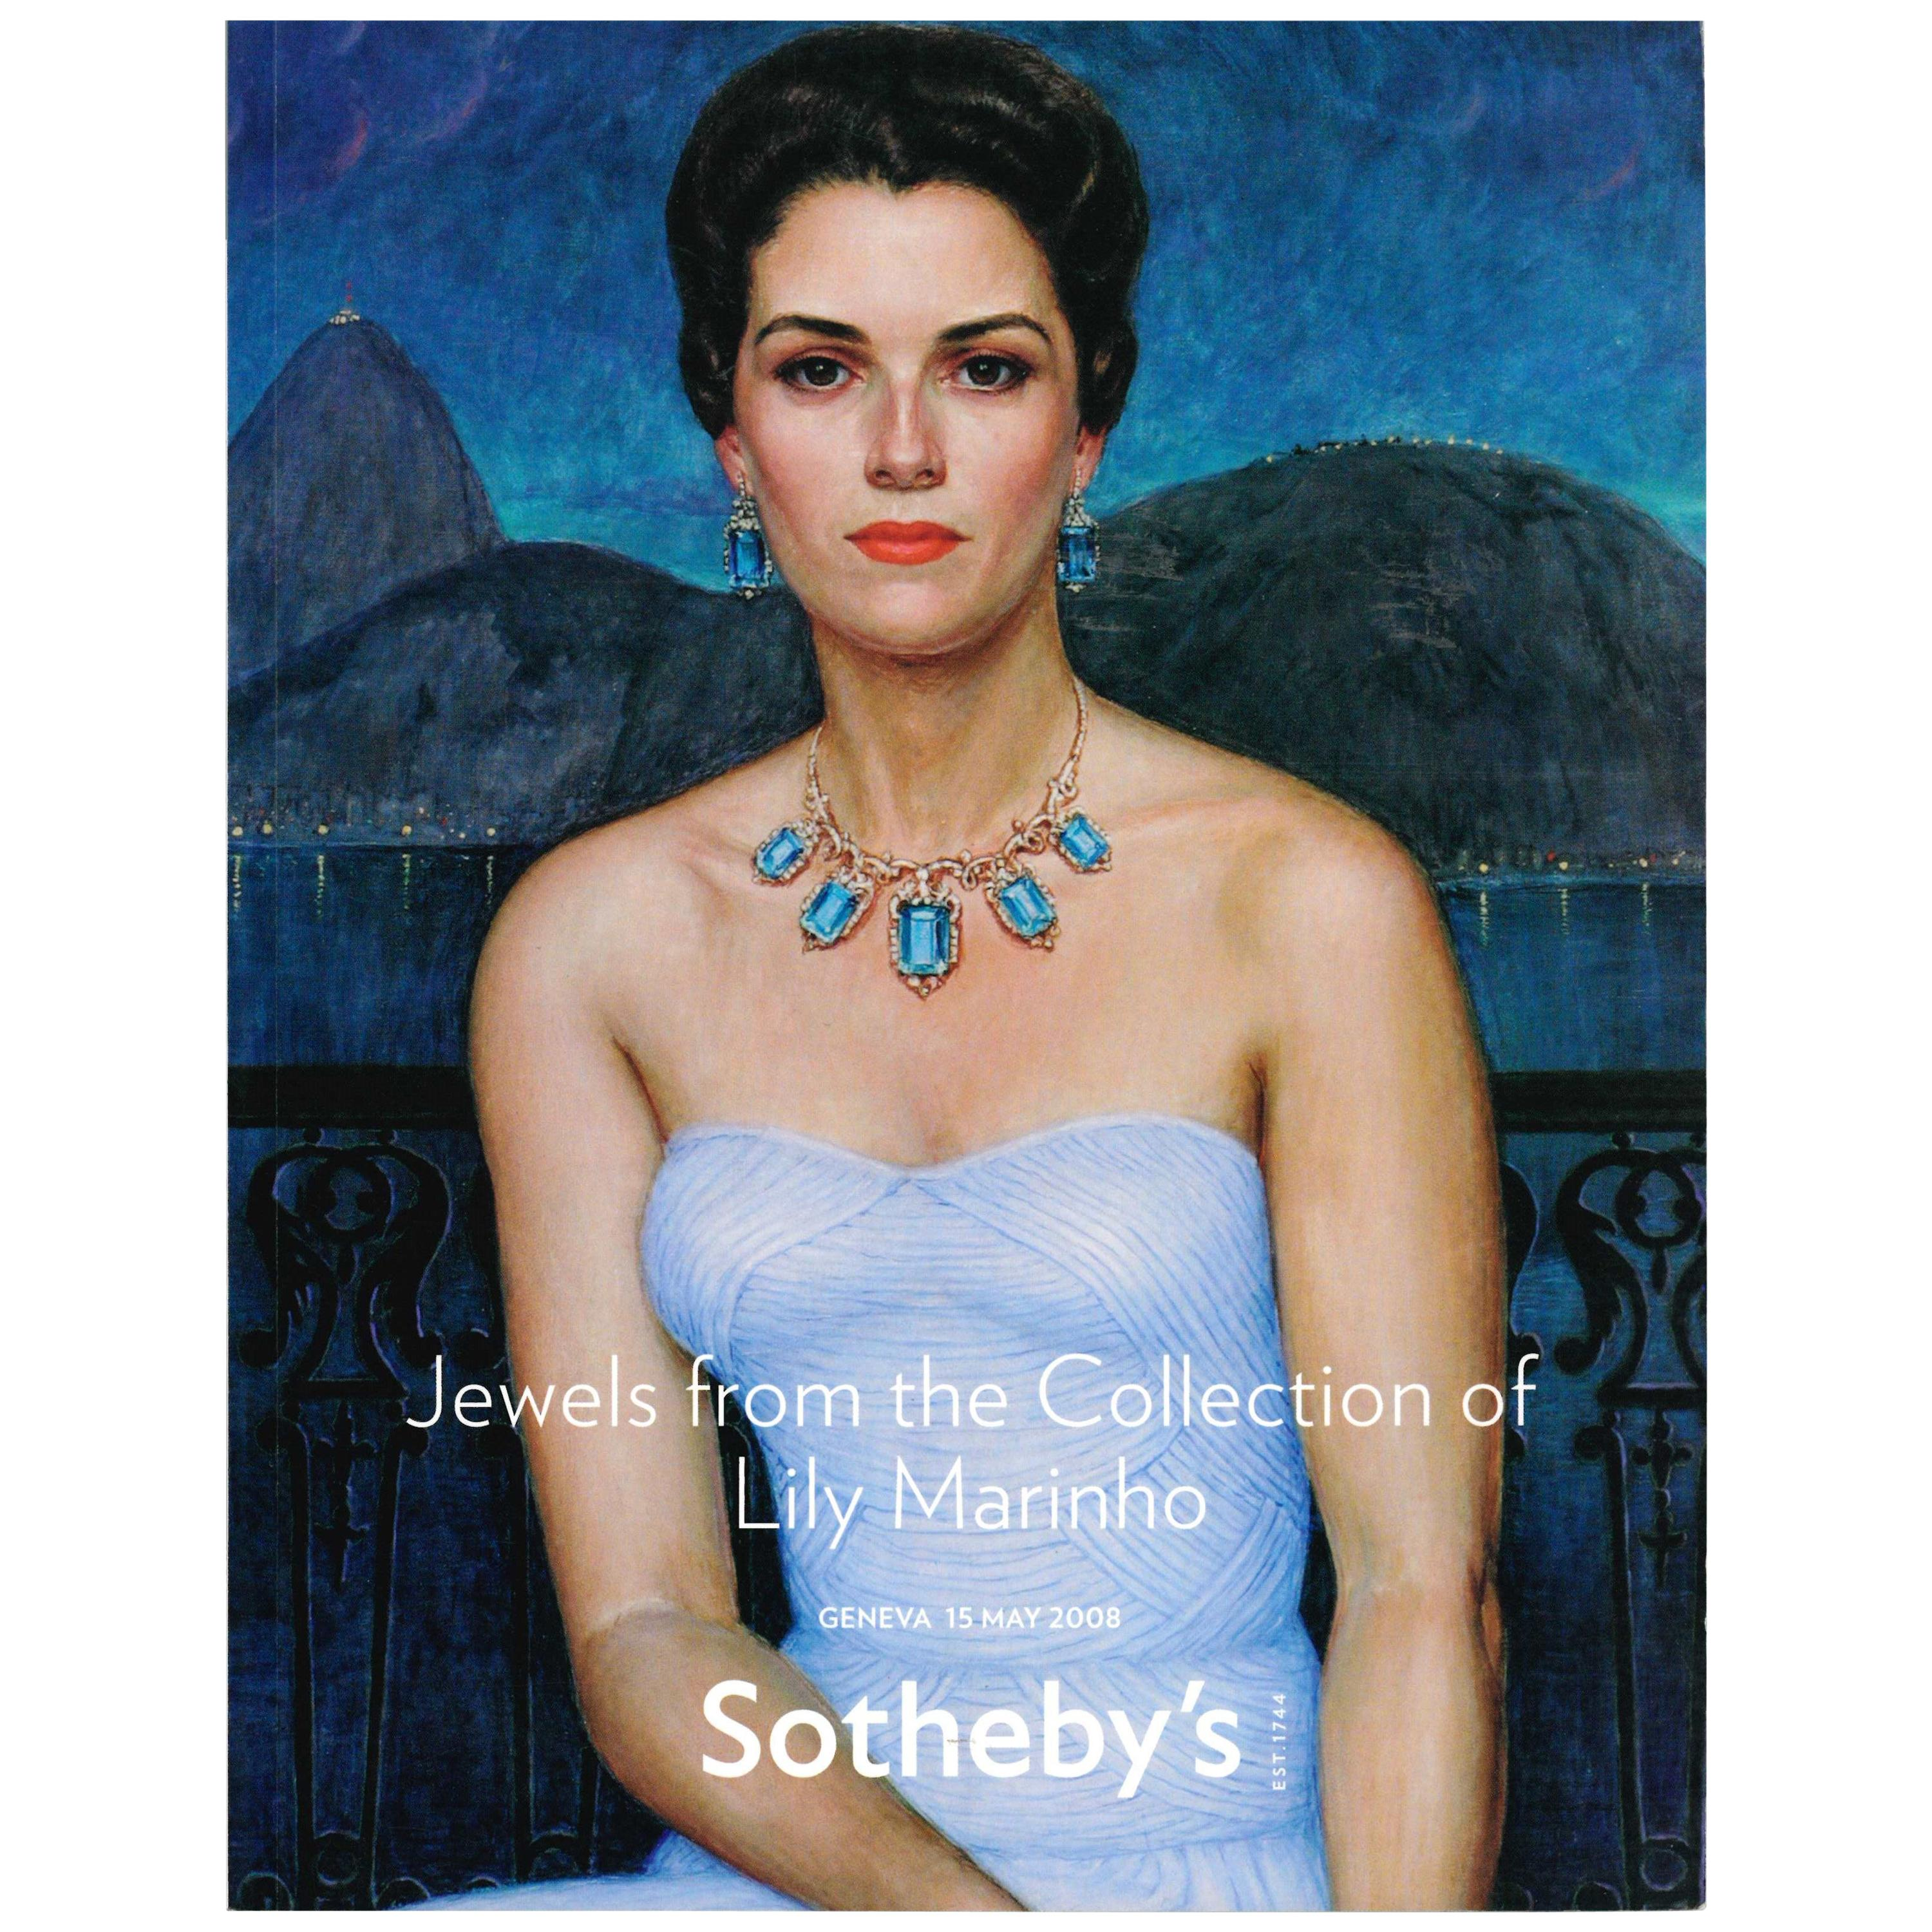 Jewels from the Collection of Lily Marinho, Sotheby's, 2008